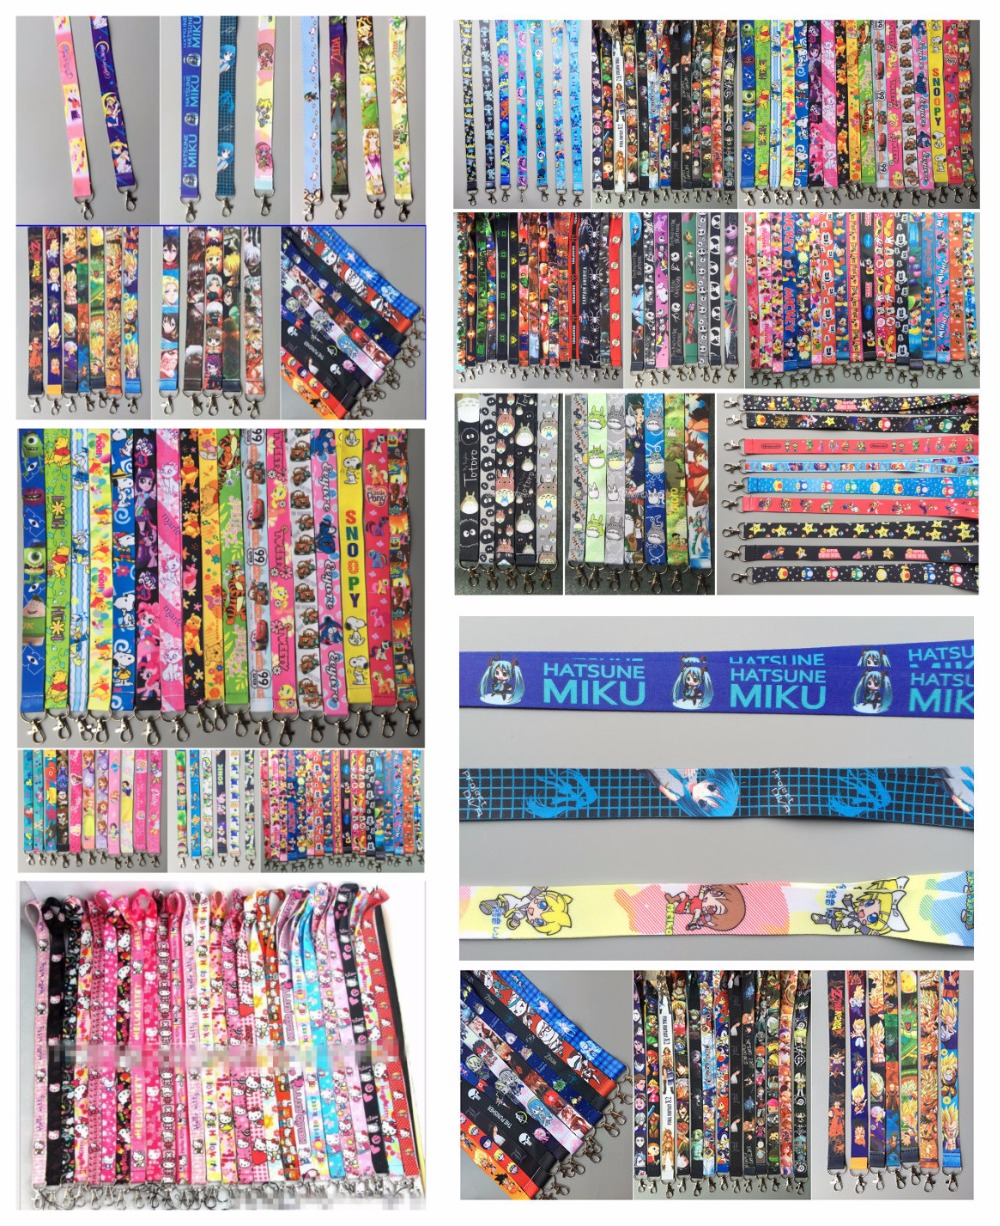 lot 100Pcs Japanese anime cartoon color mix Neck Straps Lanyards Mobile Phone,ID Card,Key chain kids party gifts Mm 07-in Key Chains from Jewelry & Accessories    1